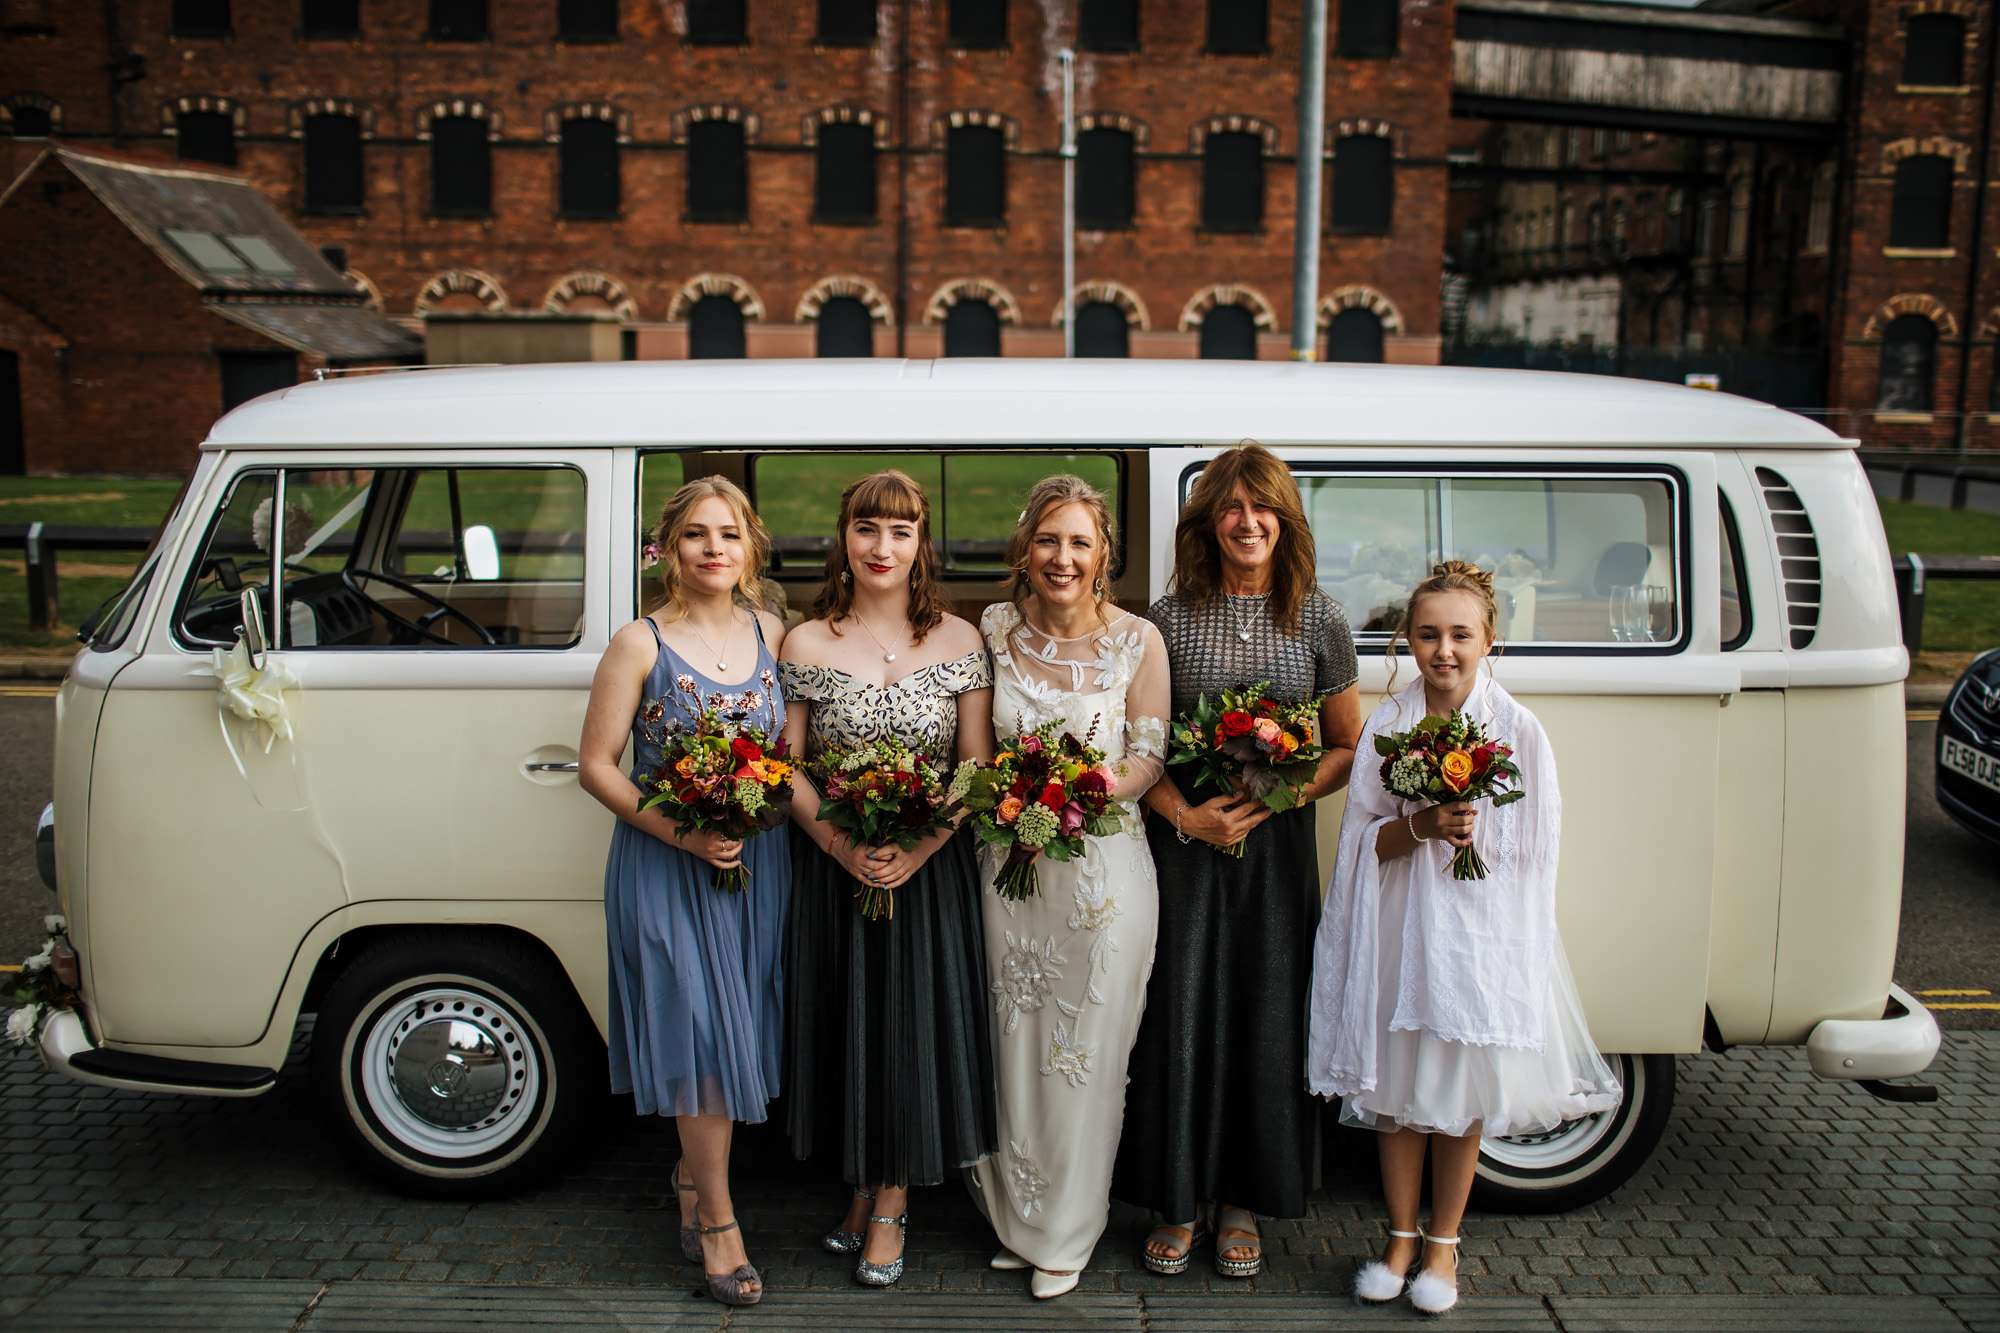 Bridal party posing in front of a VW campervan